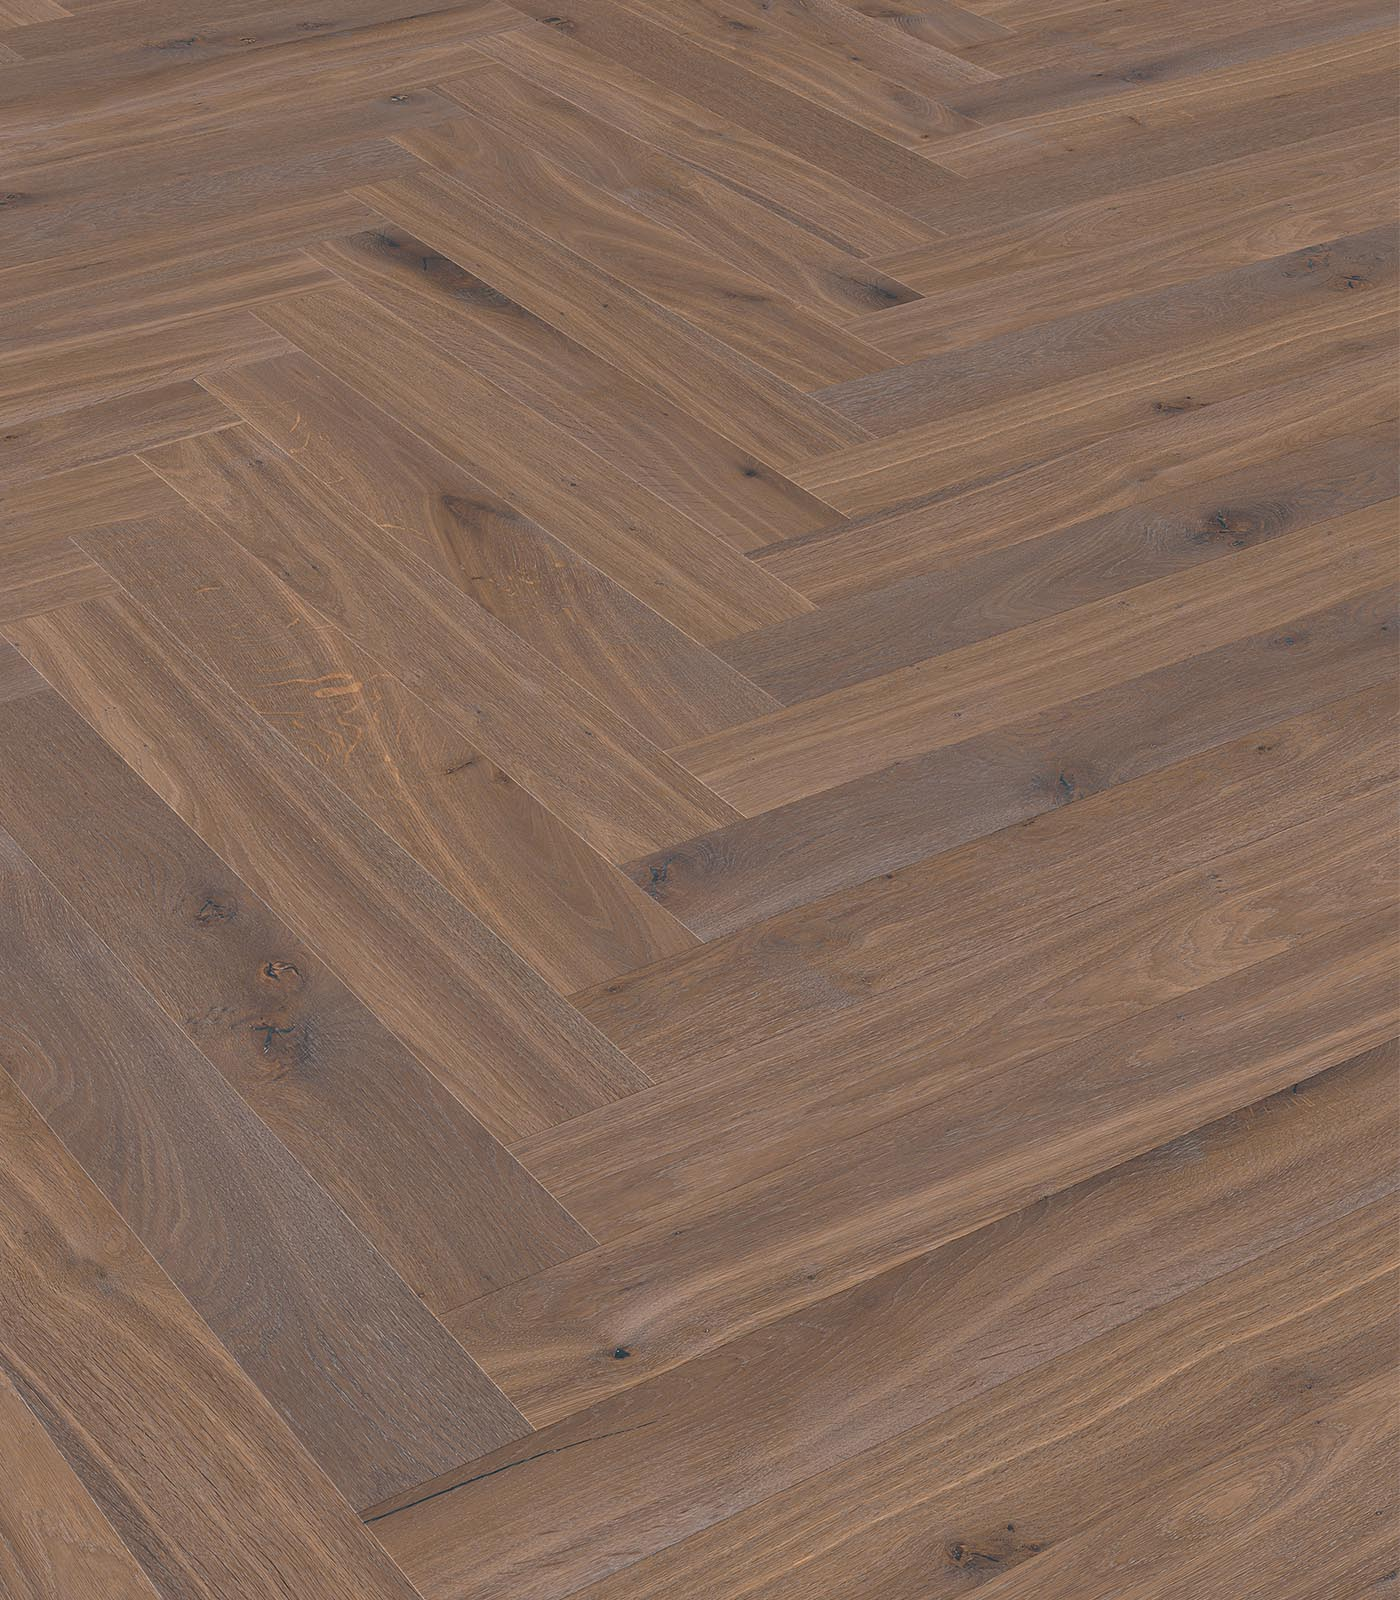 Fashion Collection-Herringbone-Biarritz-Western European oak floors-angle